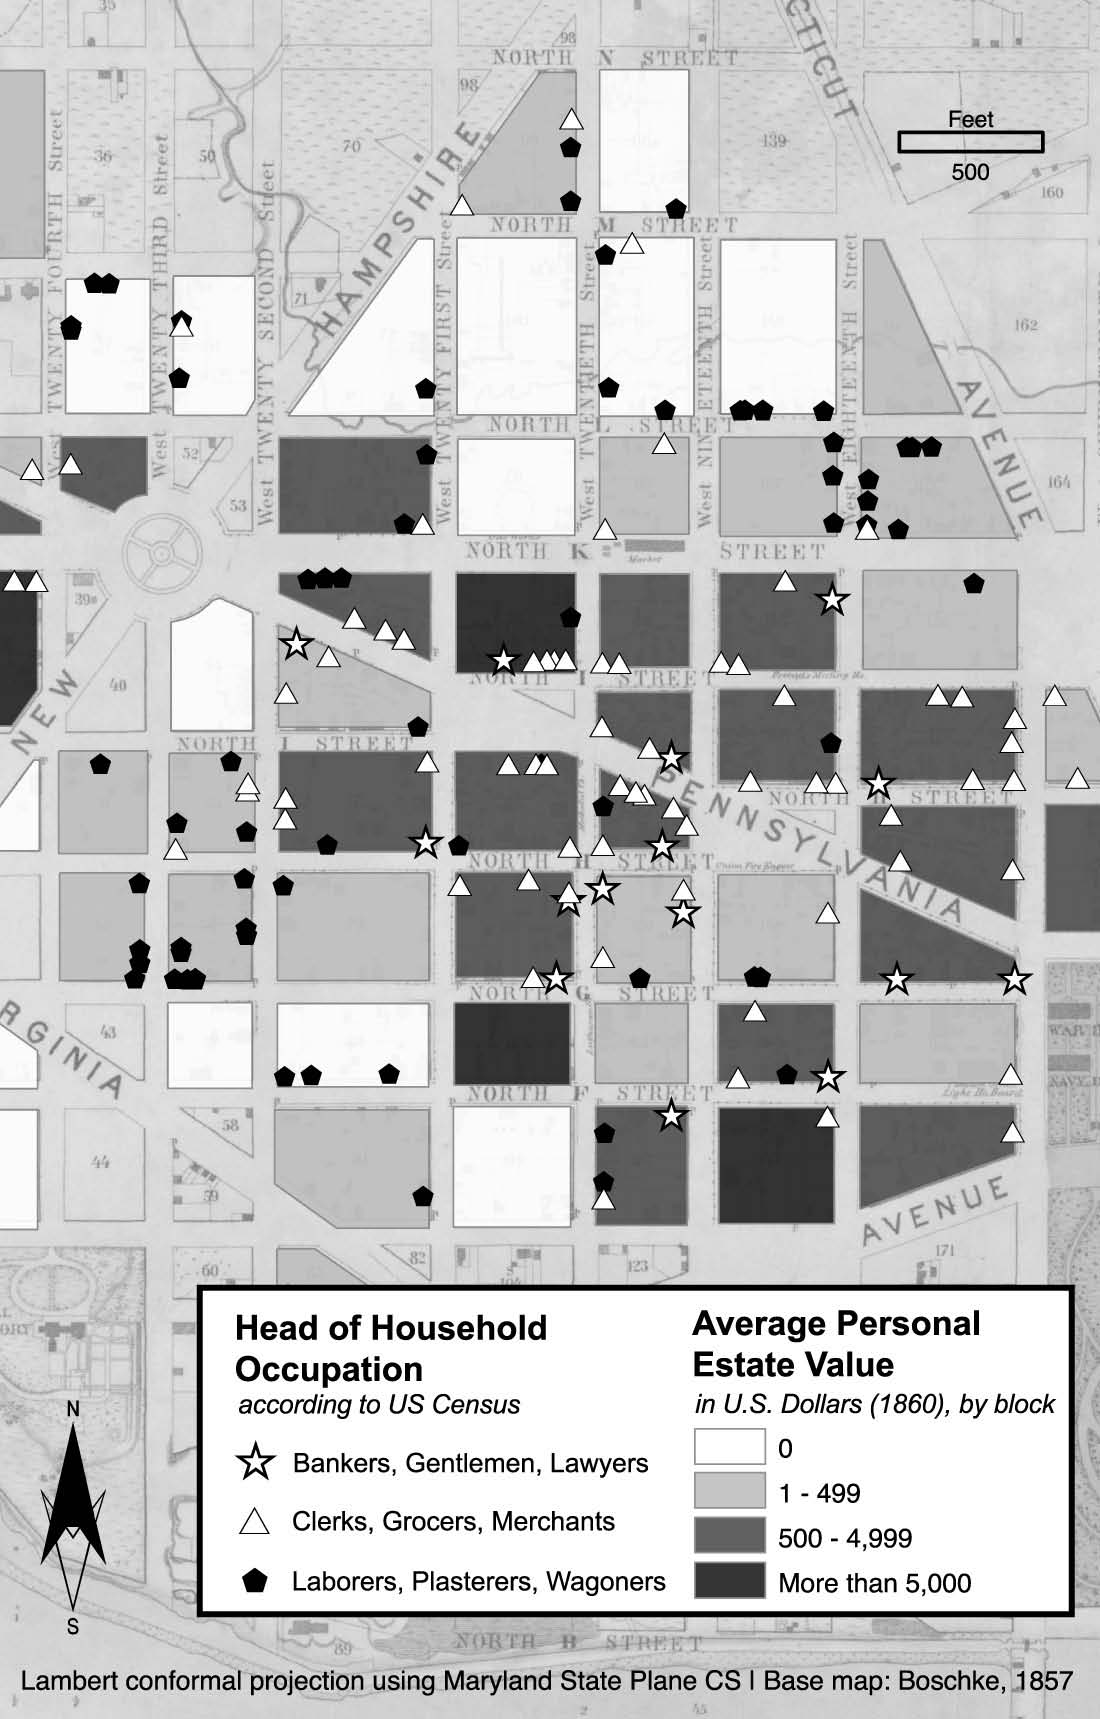 Image showing value of average personal estate values depicted on a map of the First Ward in Washington, DC